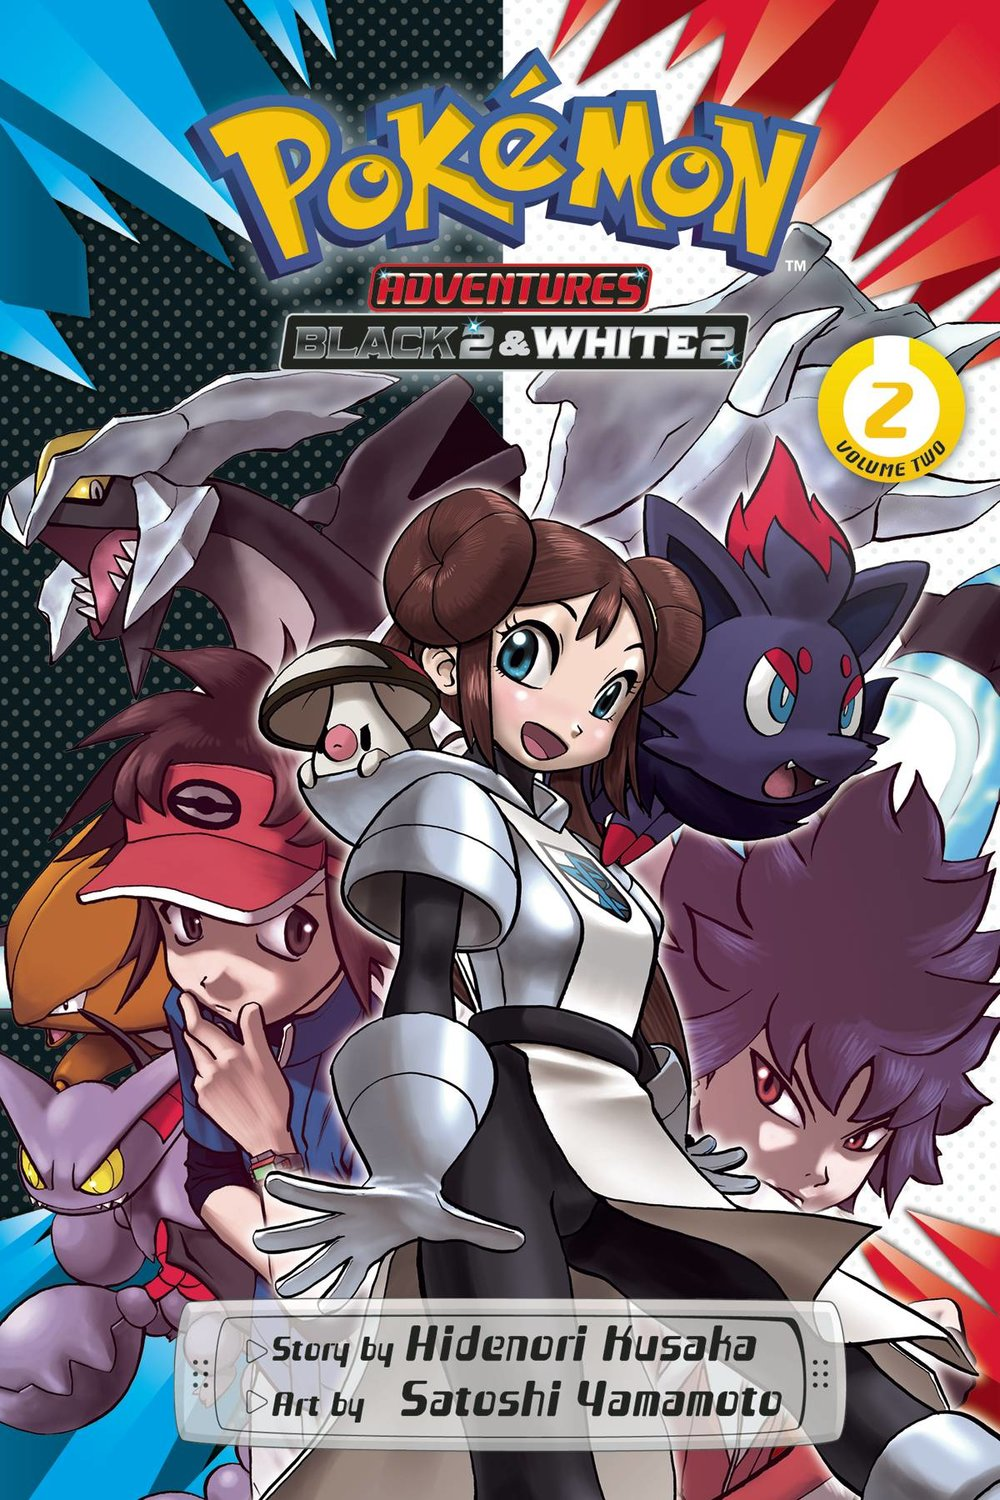 POKEMON ADV BLACK & WHITE 2 GN VOL 02.jpg